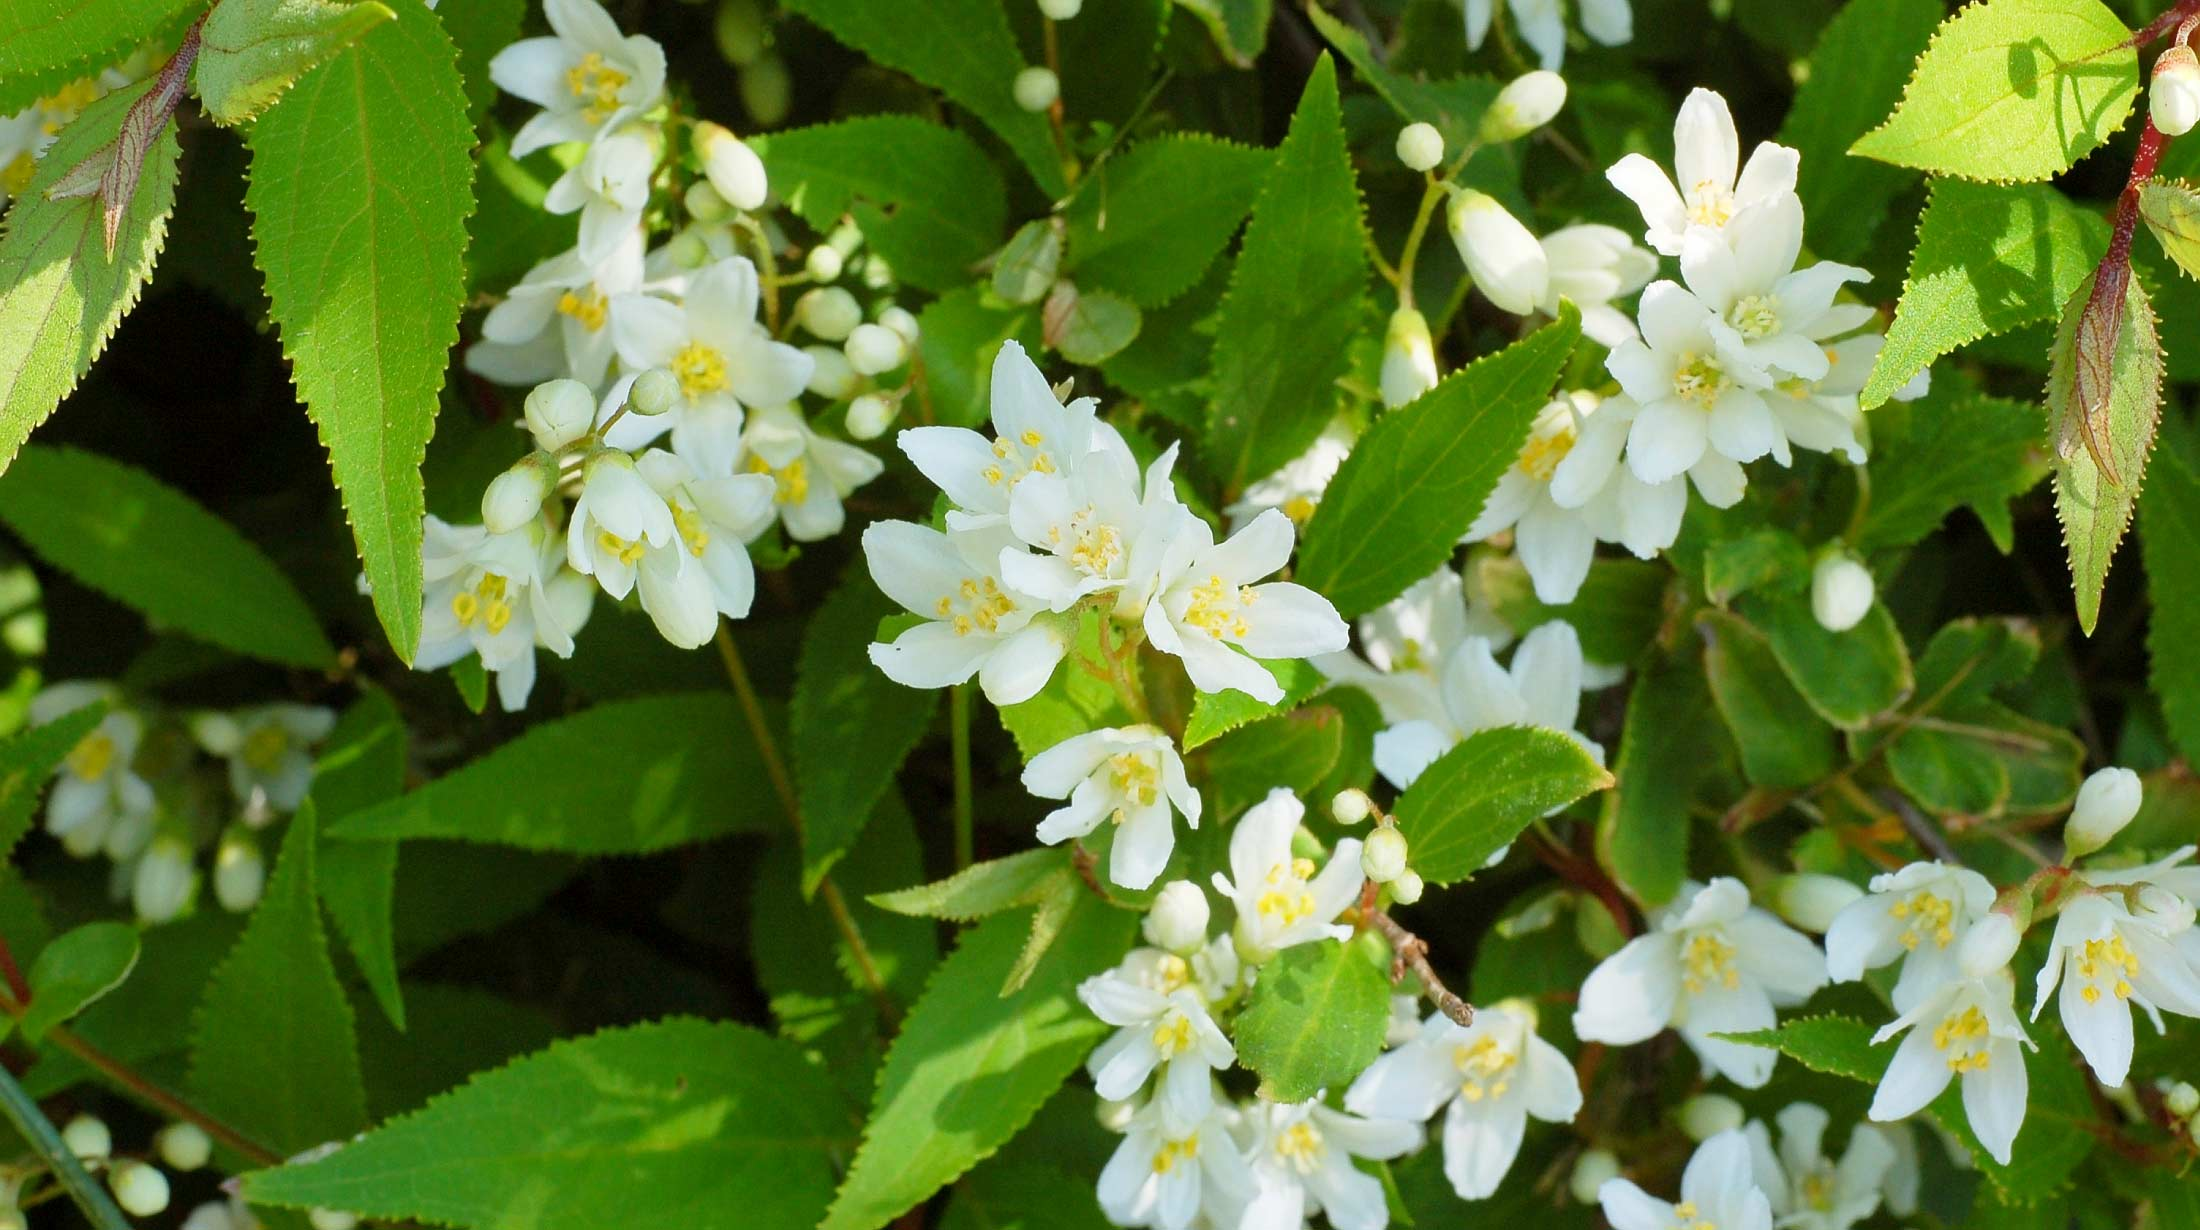 Mes Of Fragrant White Flowers Adorn This Compact Fine Textured Shrub In April To May Reaching 2 Foot Tall And 5 Wide Gently Arching Branches Make